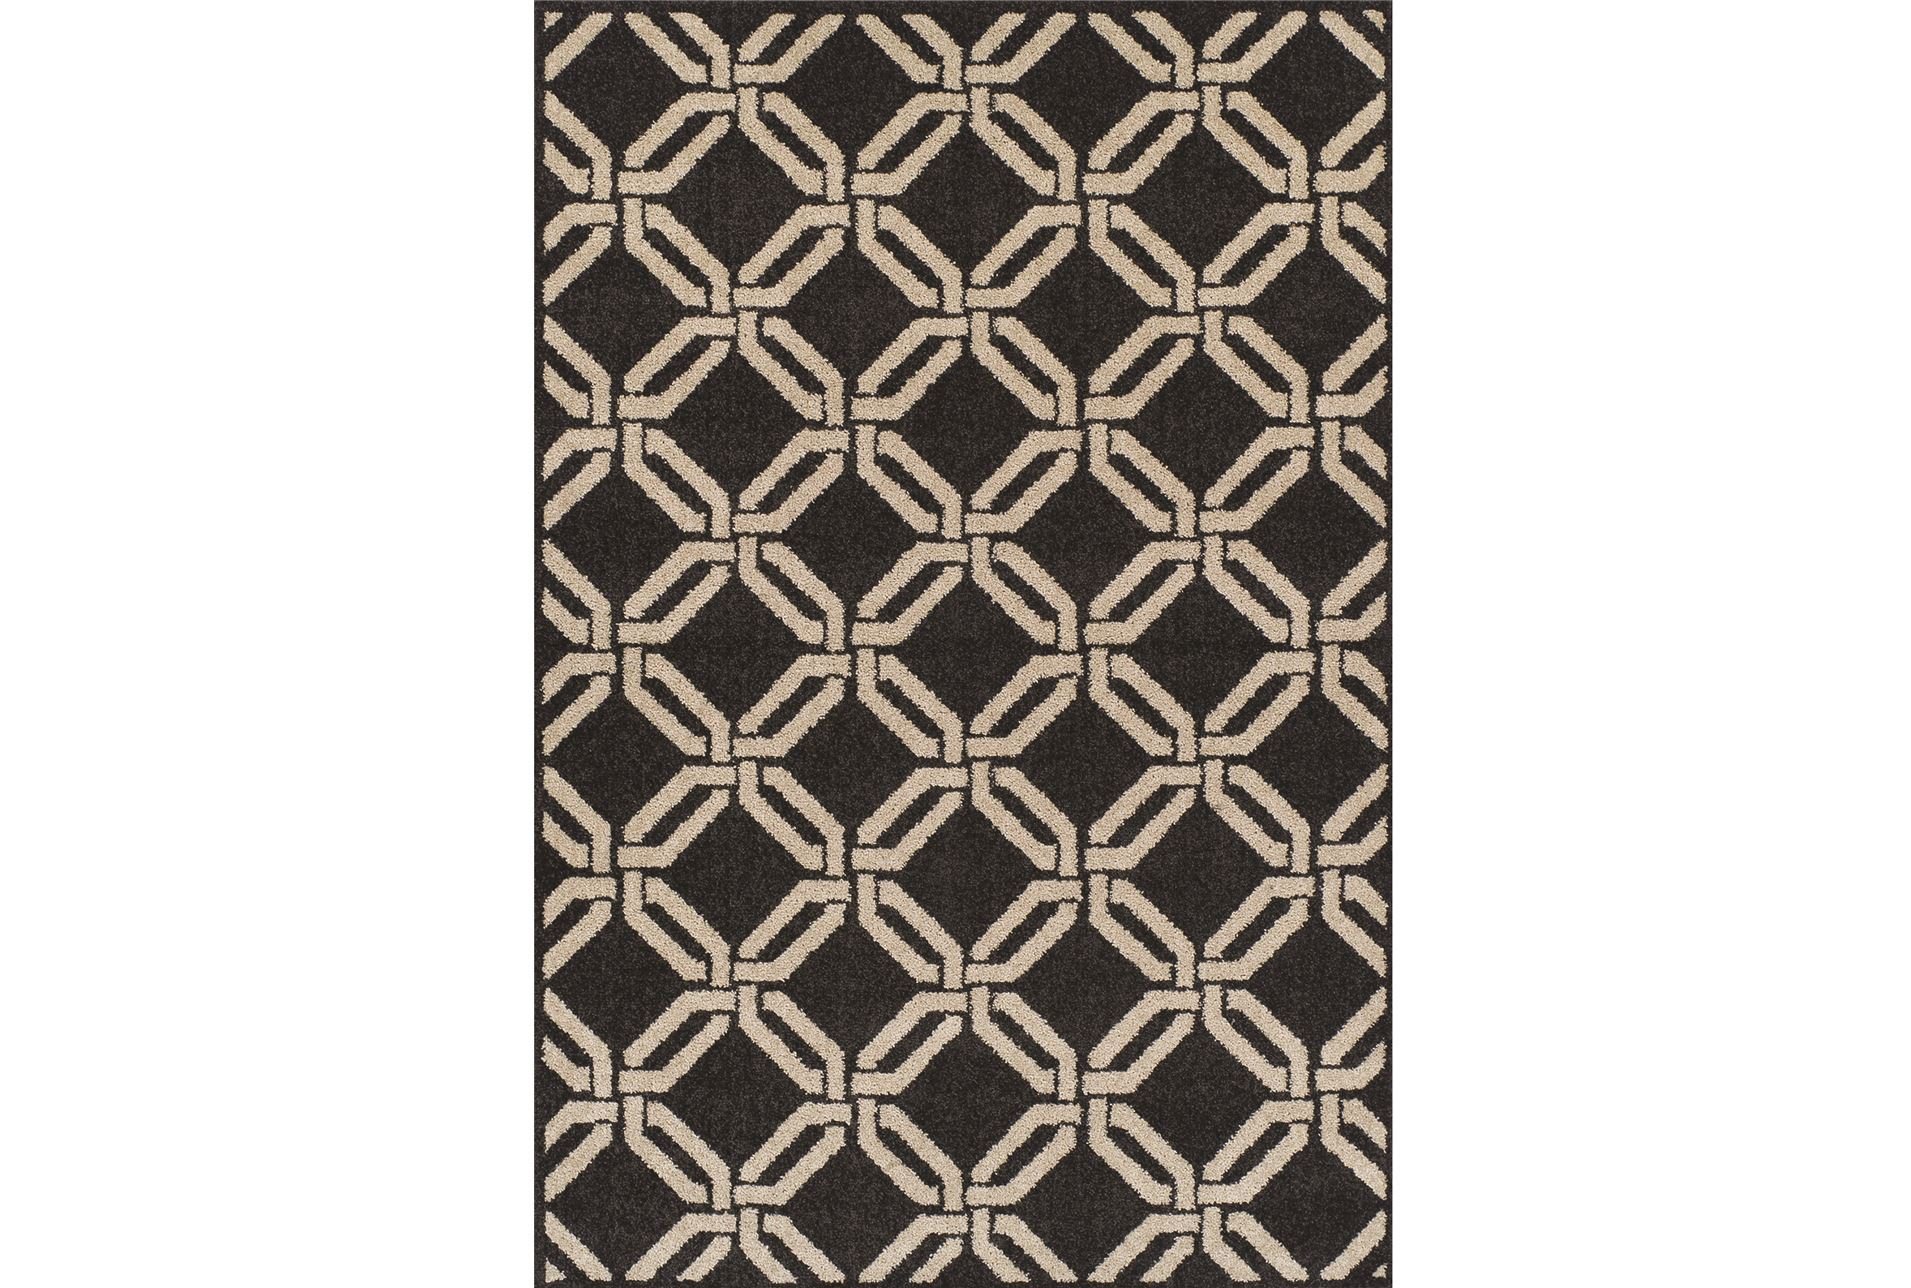 59x84 rug marcello black living spaces for Living spaces rugs